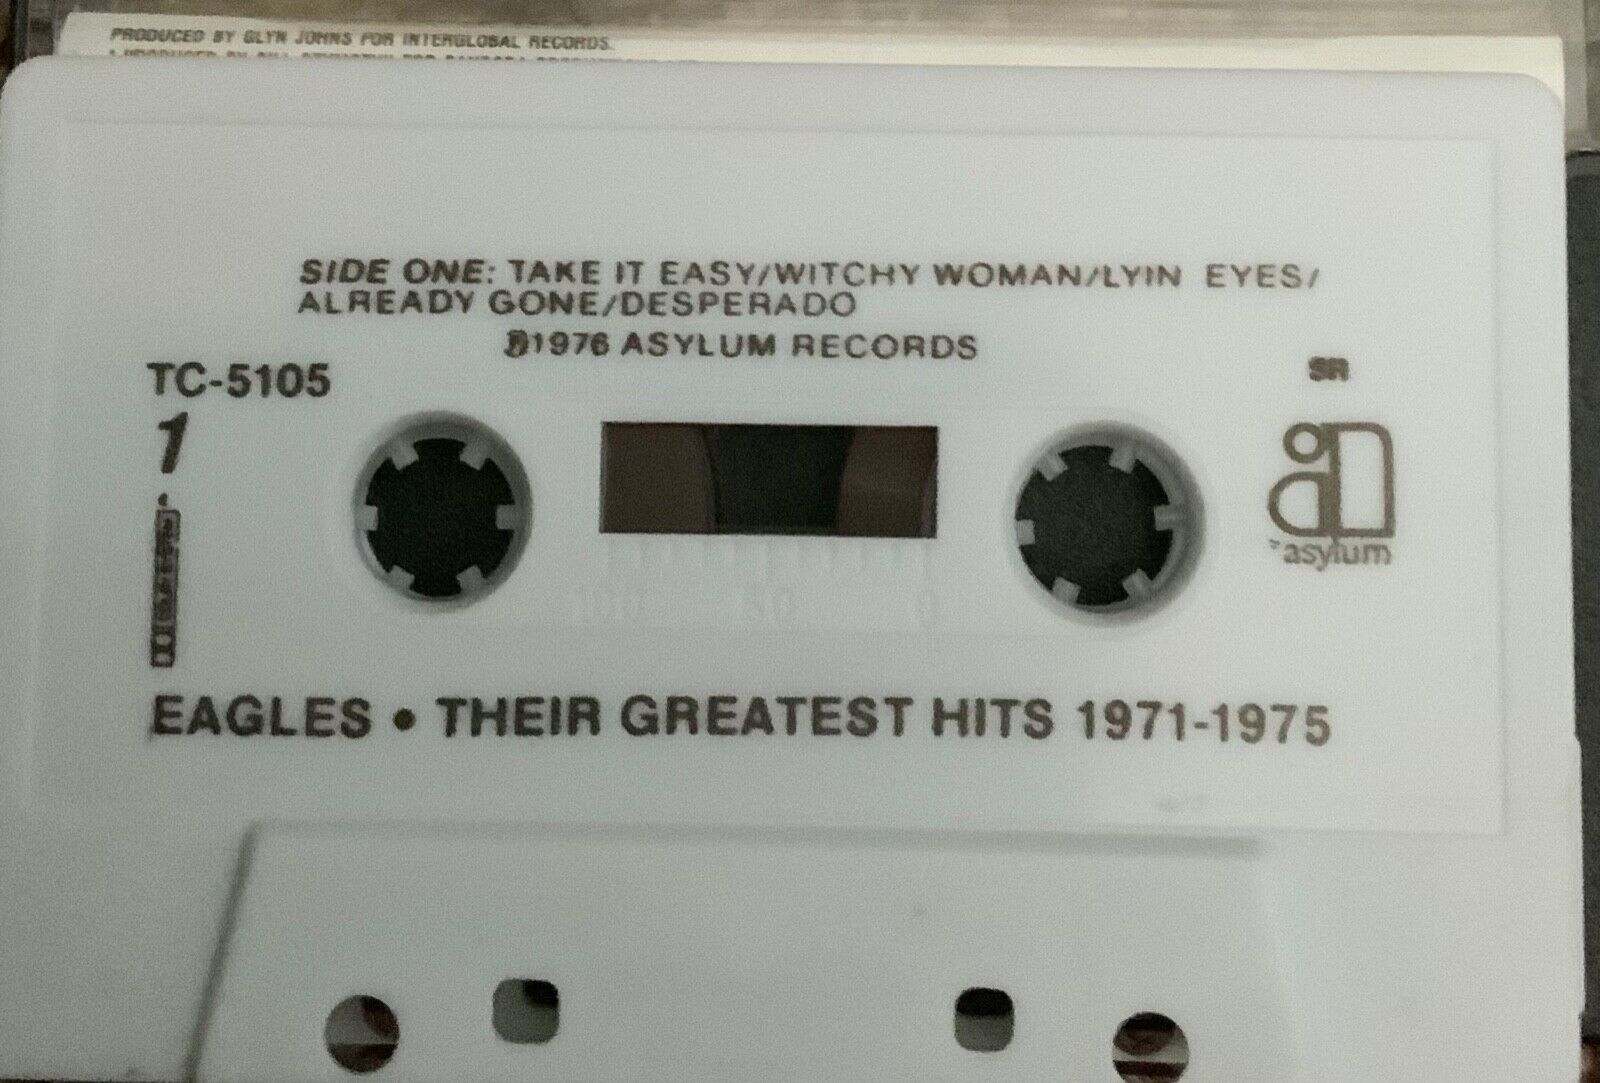 Eagles Their Greatest Hits 1971 - 1975 Cassette TC-5105 From 1976 - $9.99